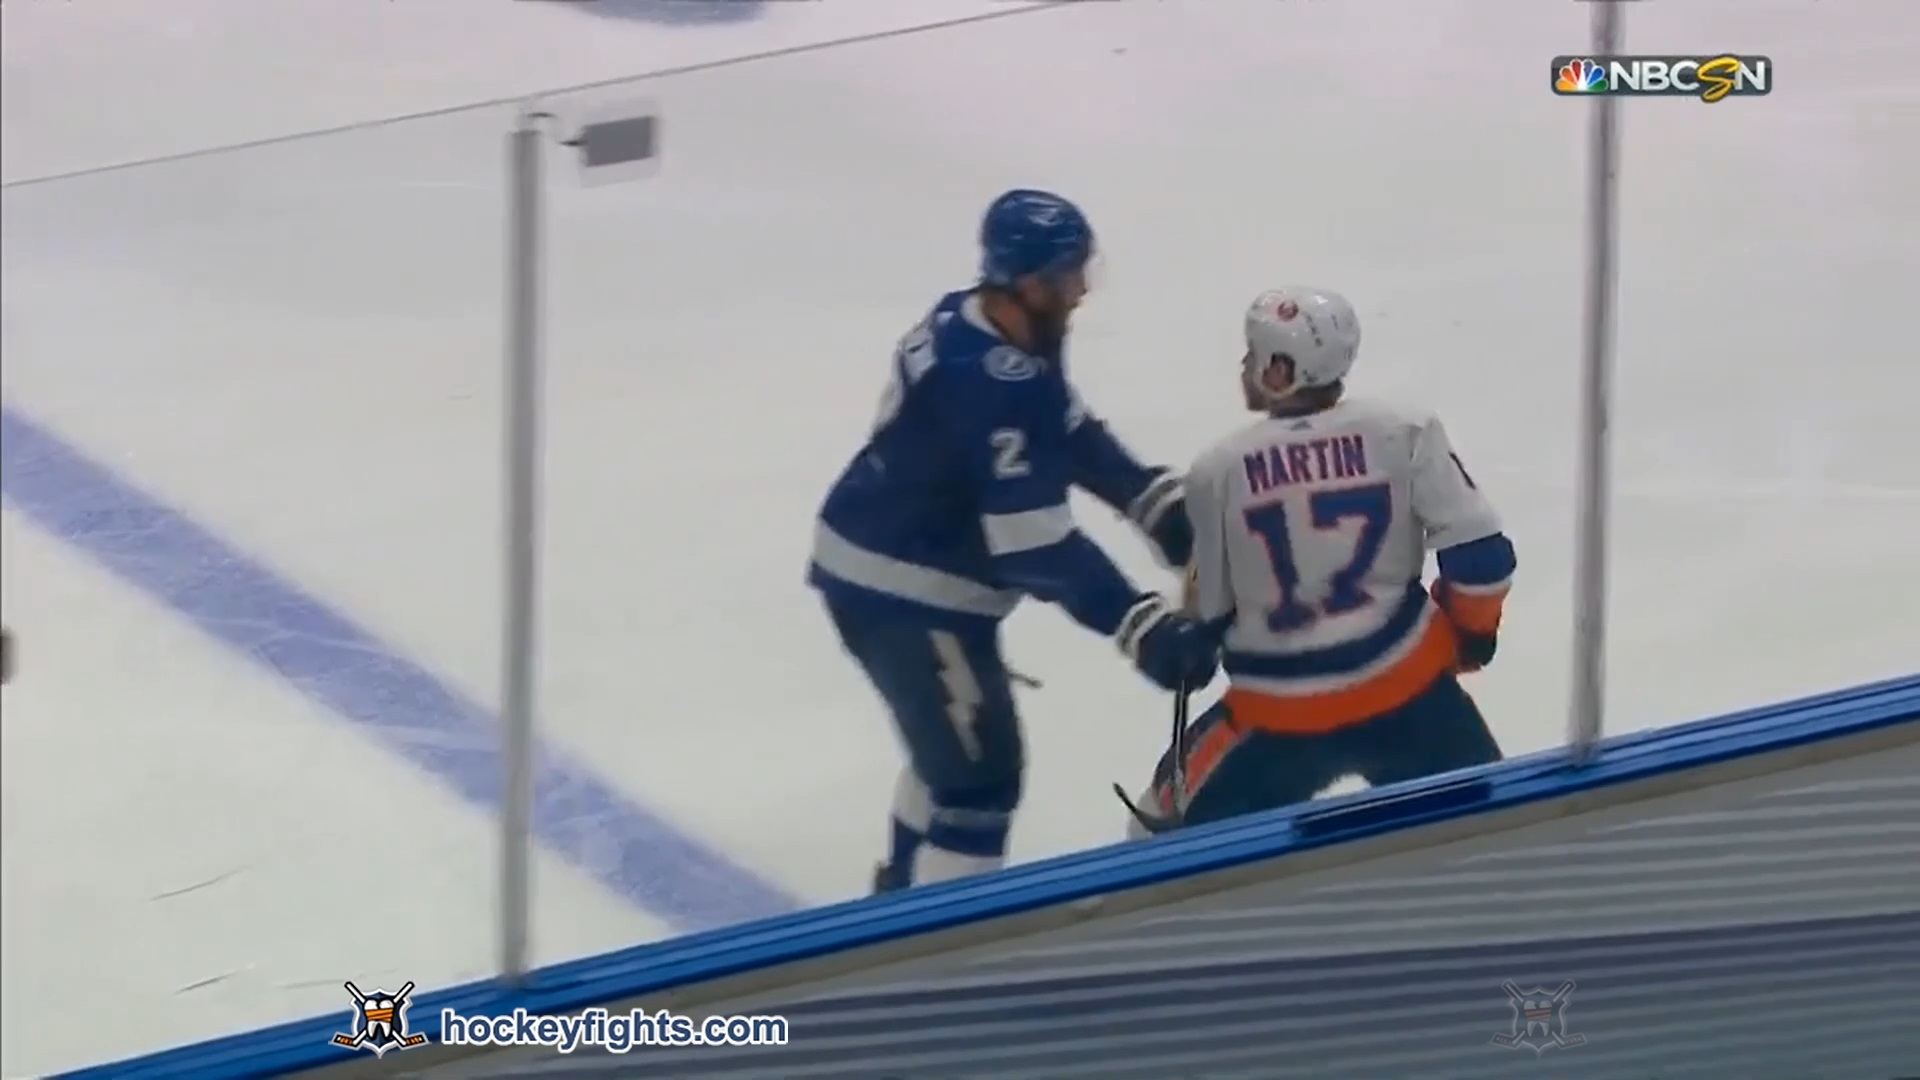 Matt Martin vs Luke Schenn